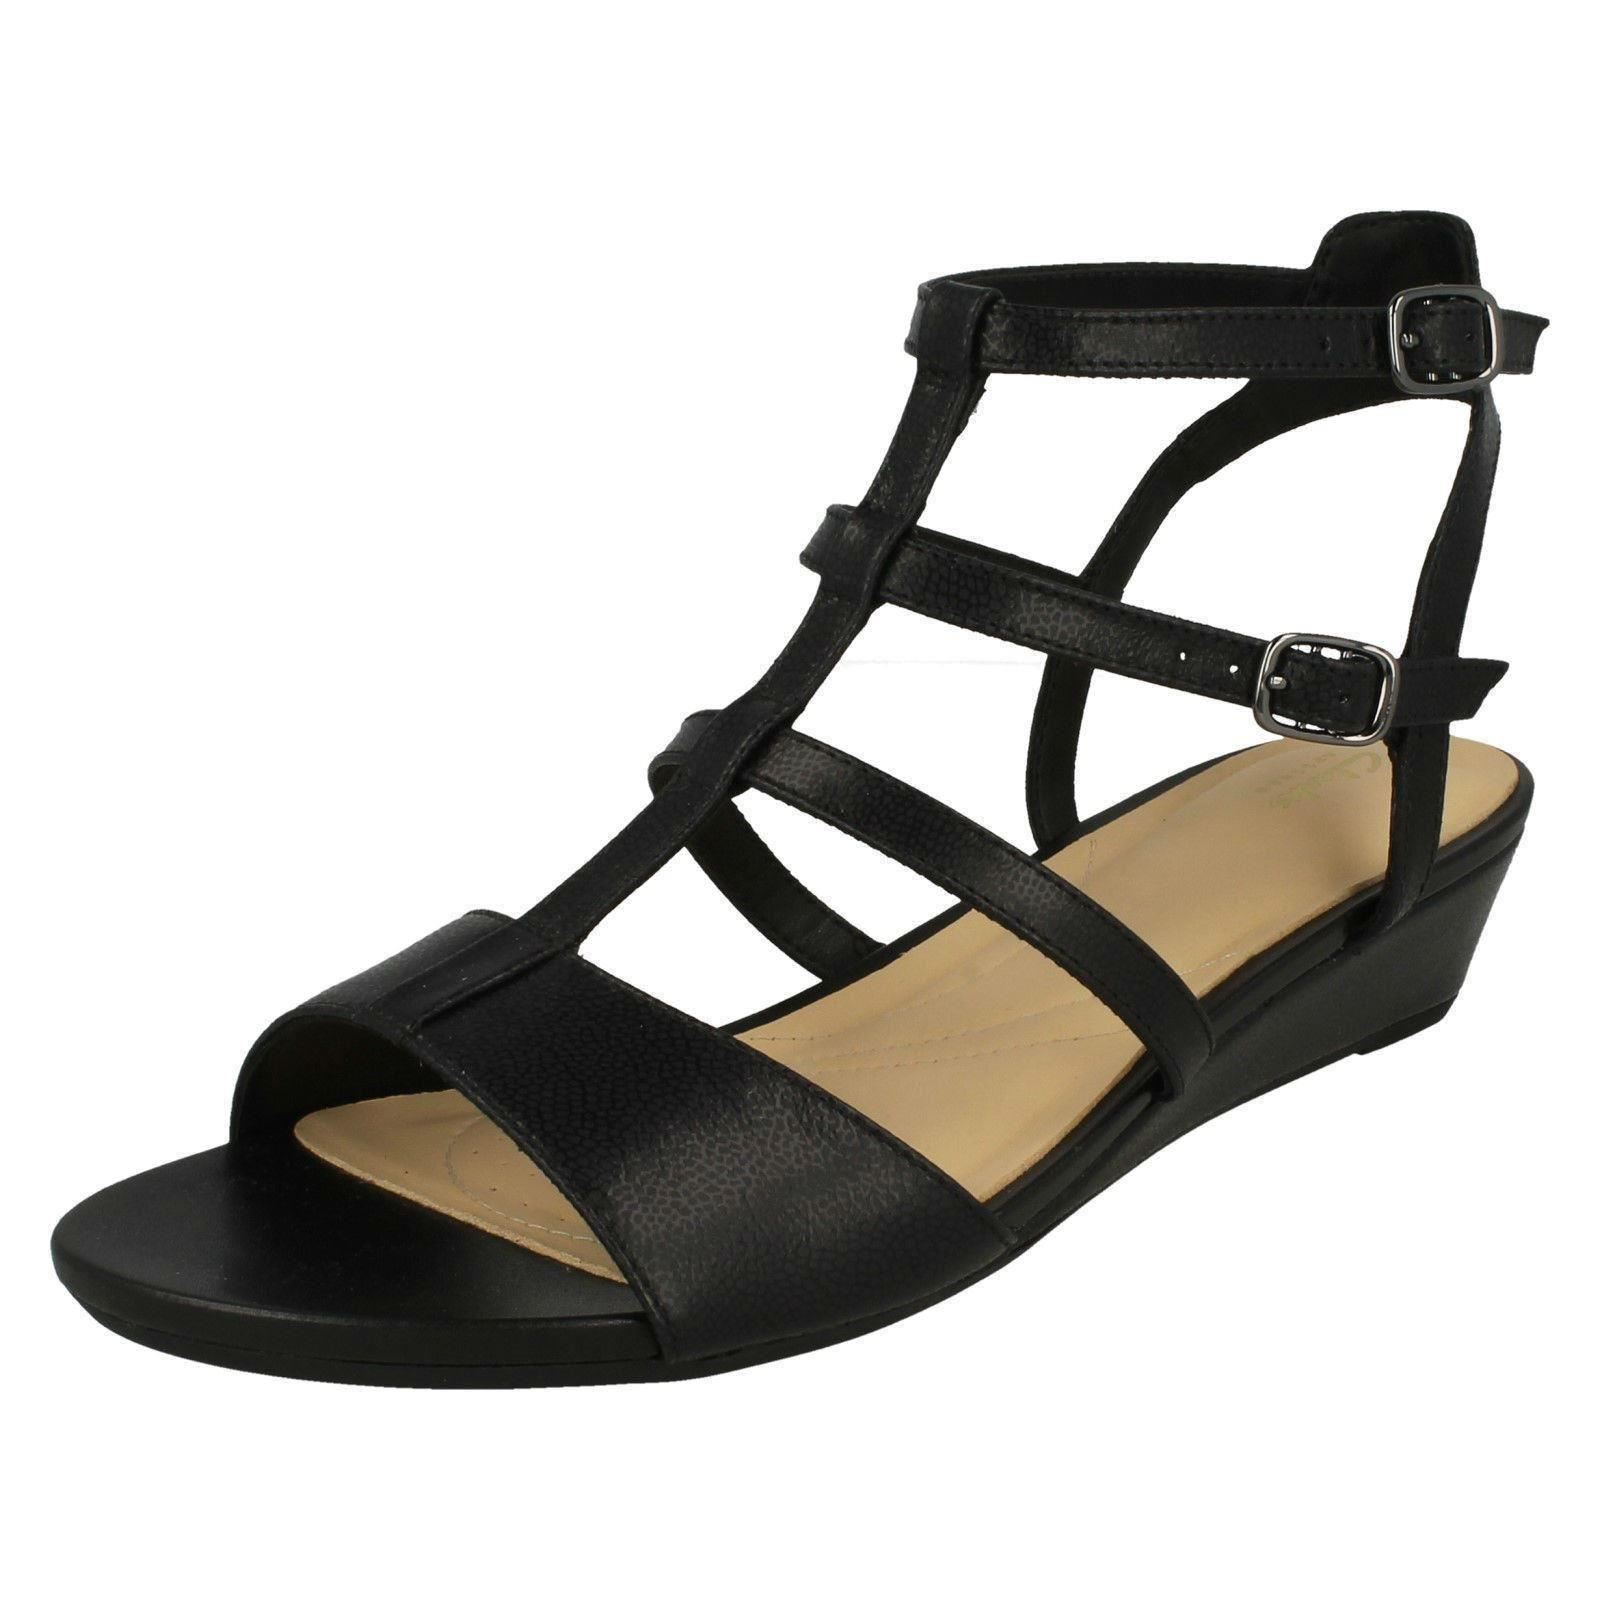 a91046e4f4c64 Clarks Parram Spice - Black Nubuck Womens Sandals 7 UK. About this product.  Picture 1 of 10  Picture 2 of 10 ...